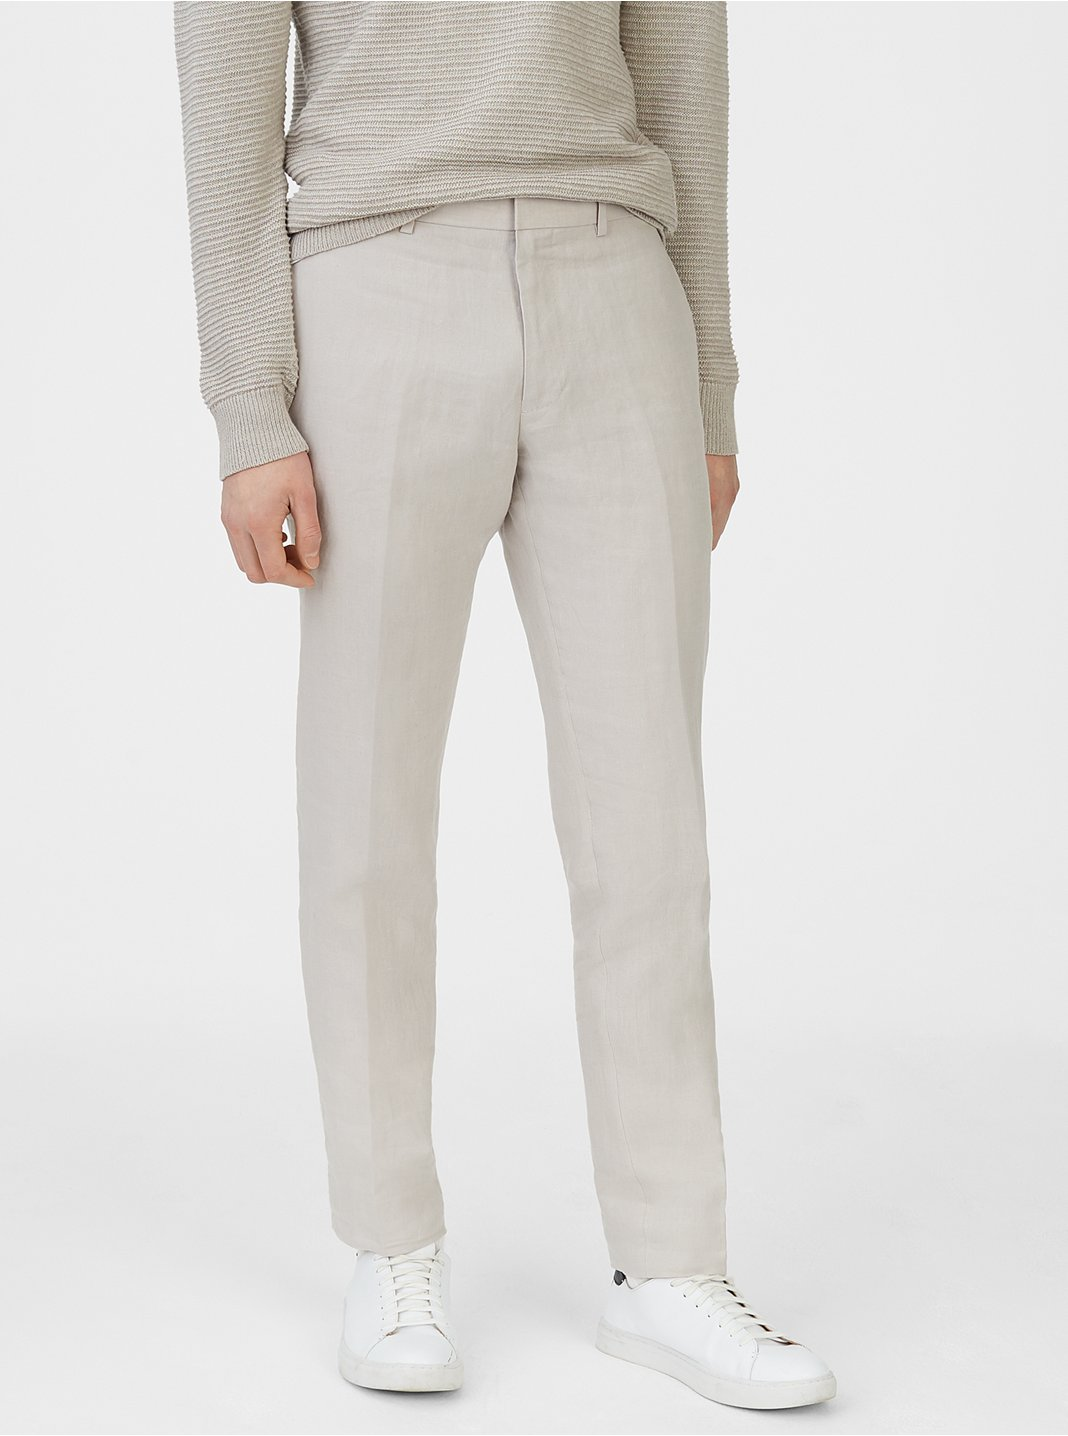 클럽 모나코 맨 Grant 리넨 팬츠 Club Monaco Grant Linen Trouser,Light Grey